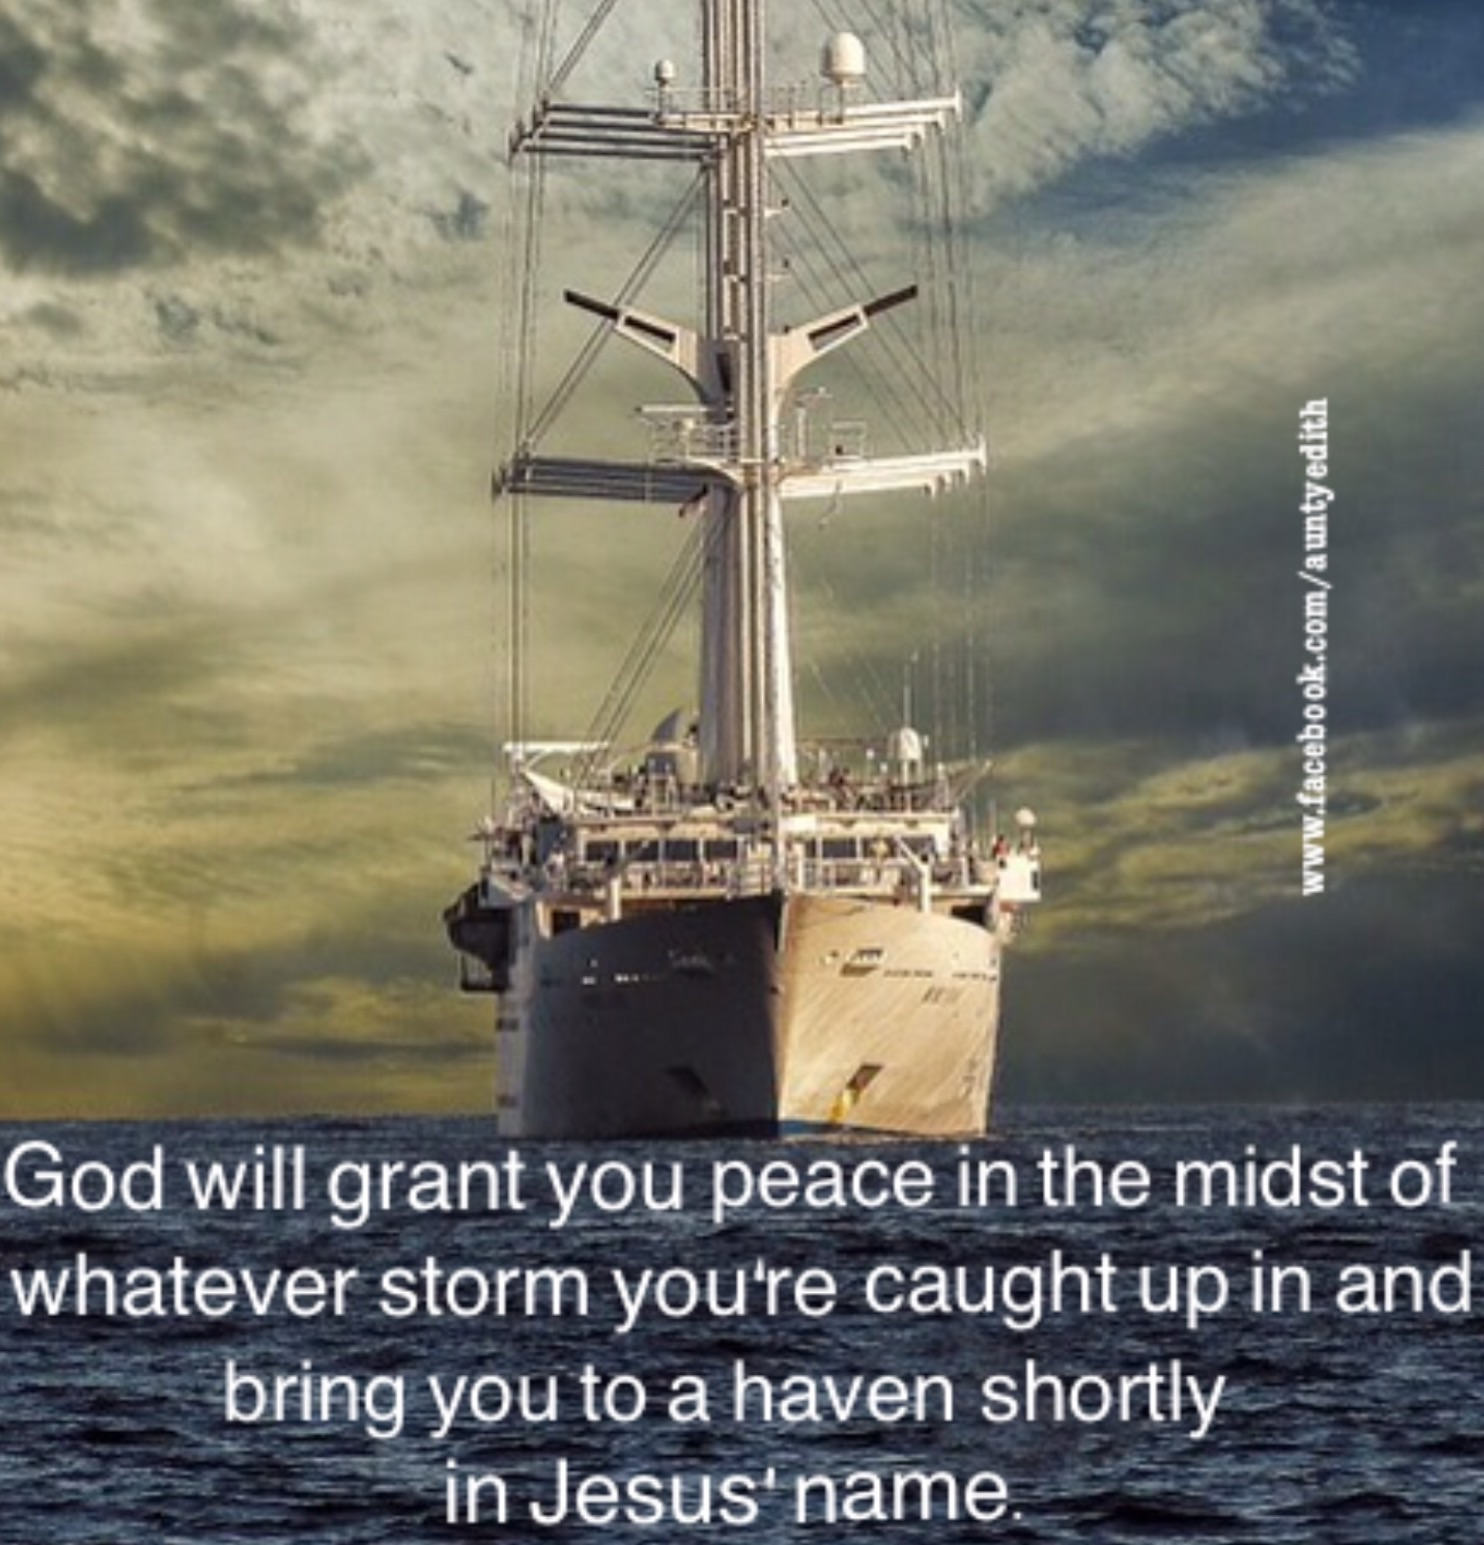 PEACE AND DELIVERANCE FROM THE STORM